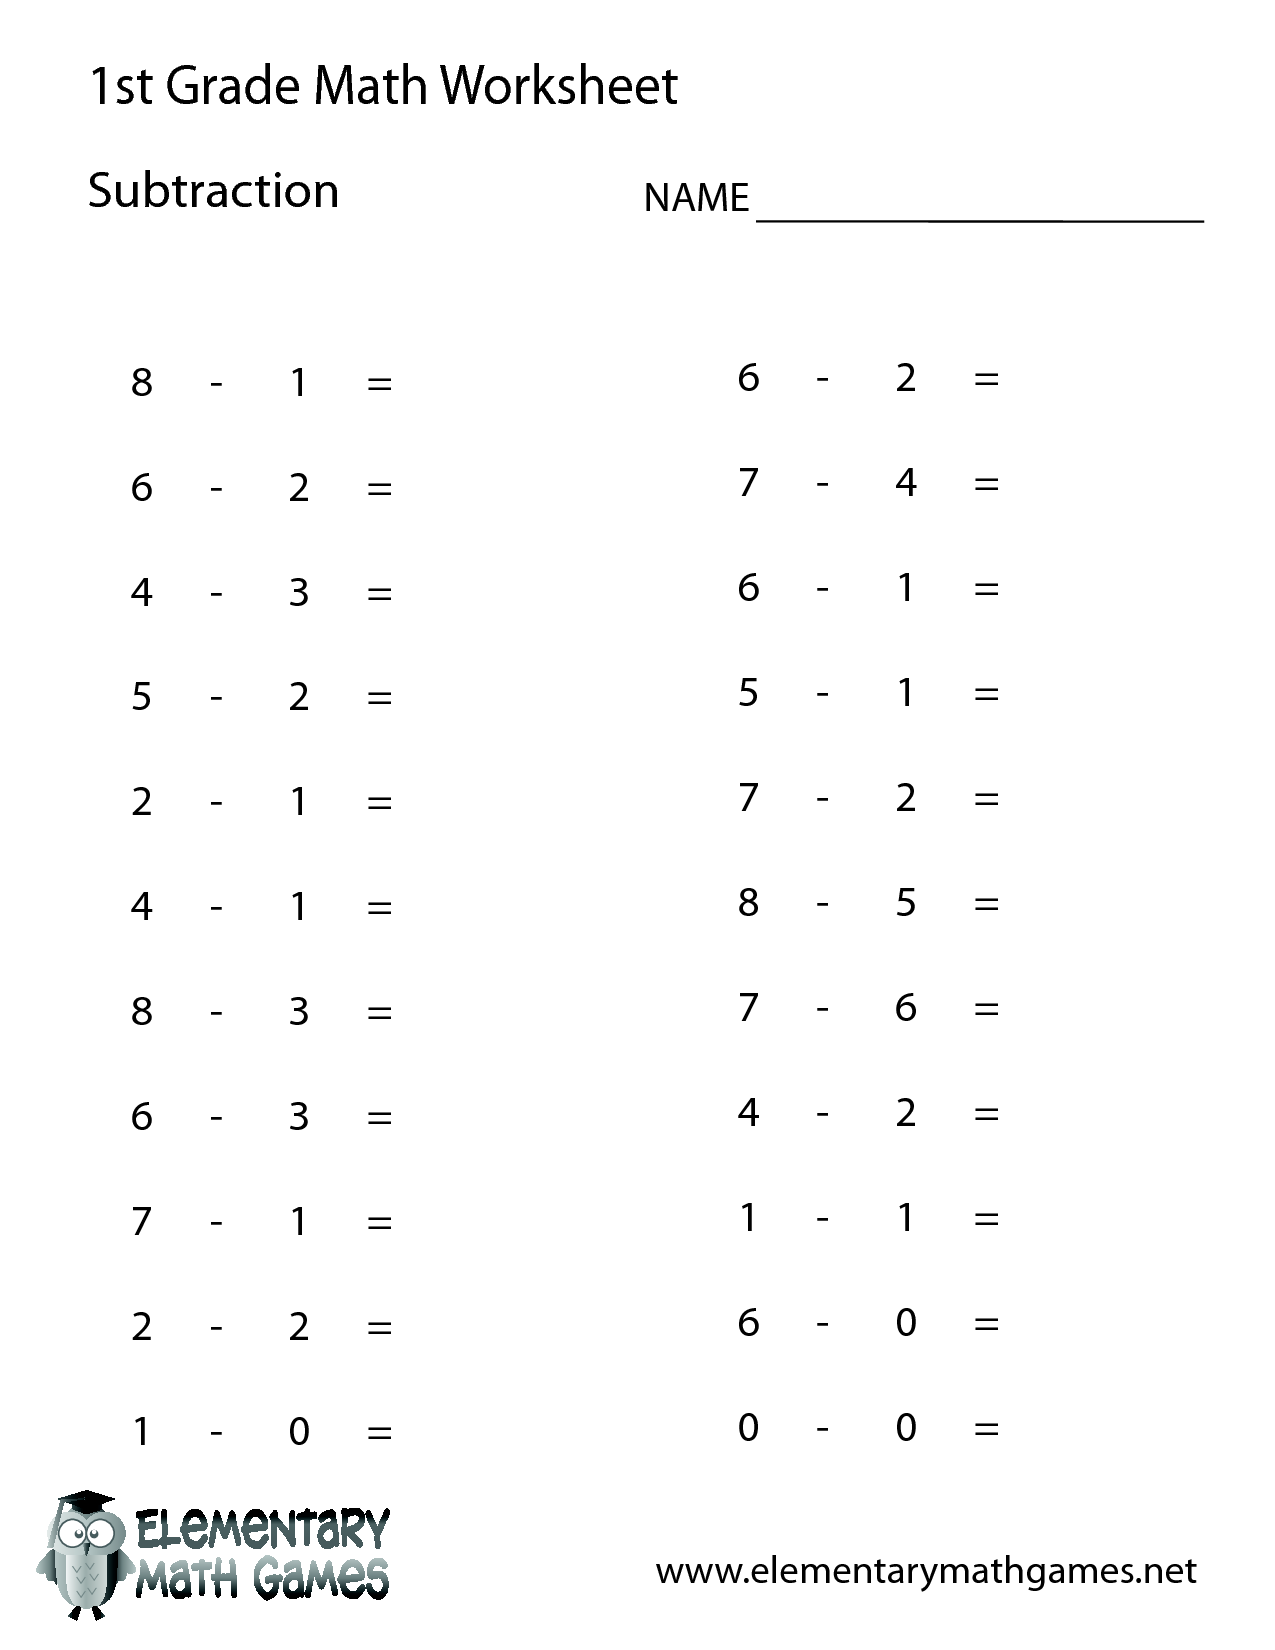 first grade math Subtraction Timed 03 – First Grade Math Worksheets Free Printables